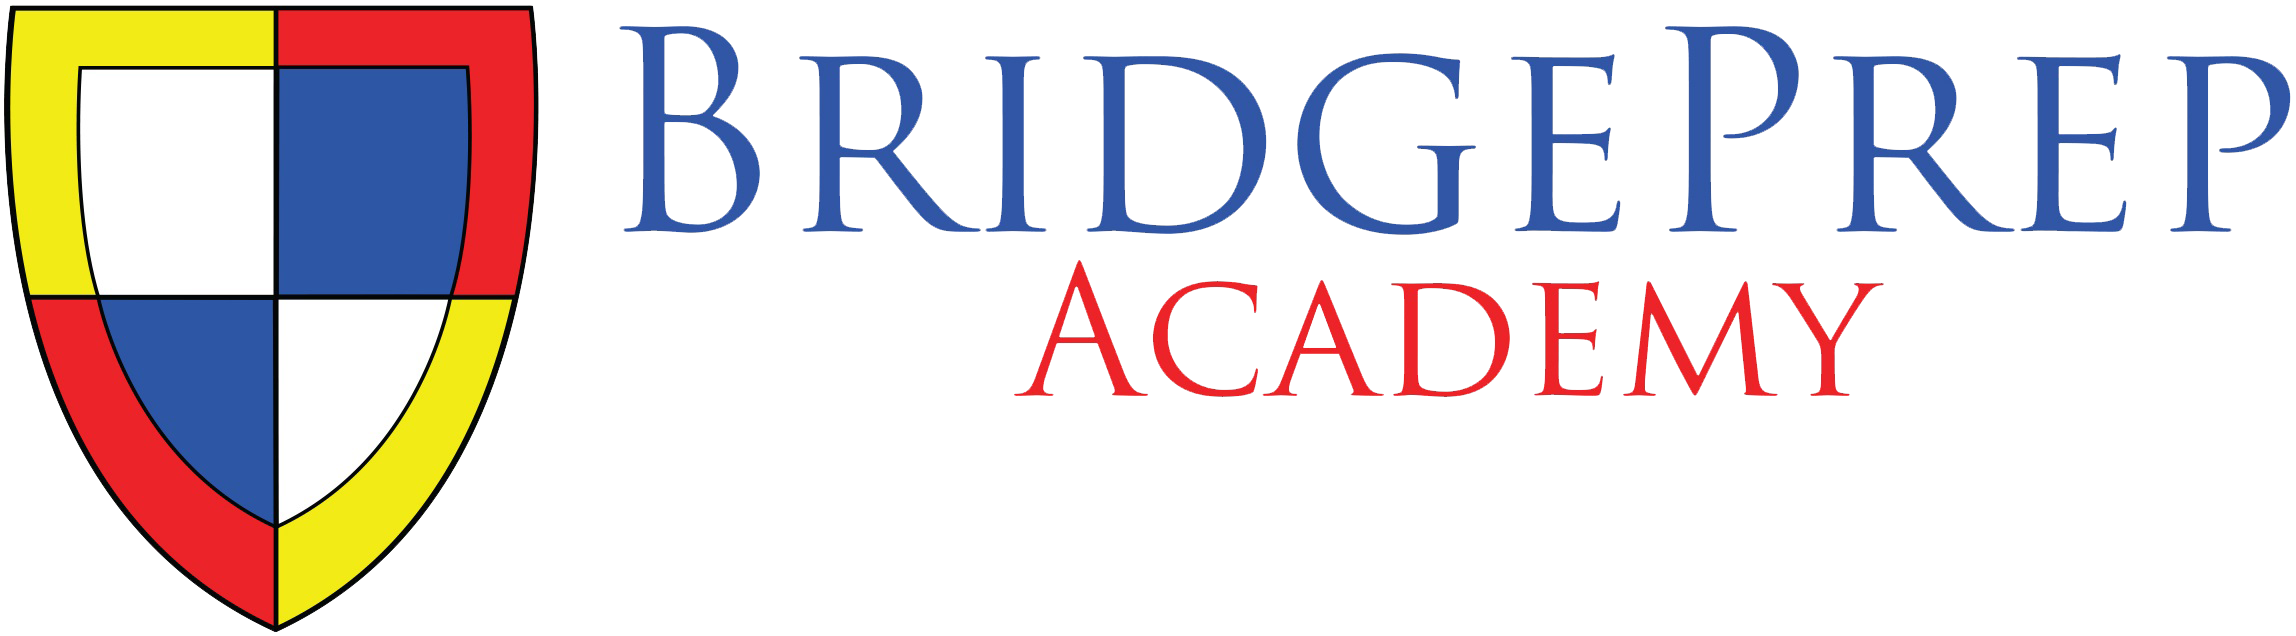 bridge-academy.png